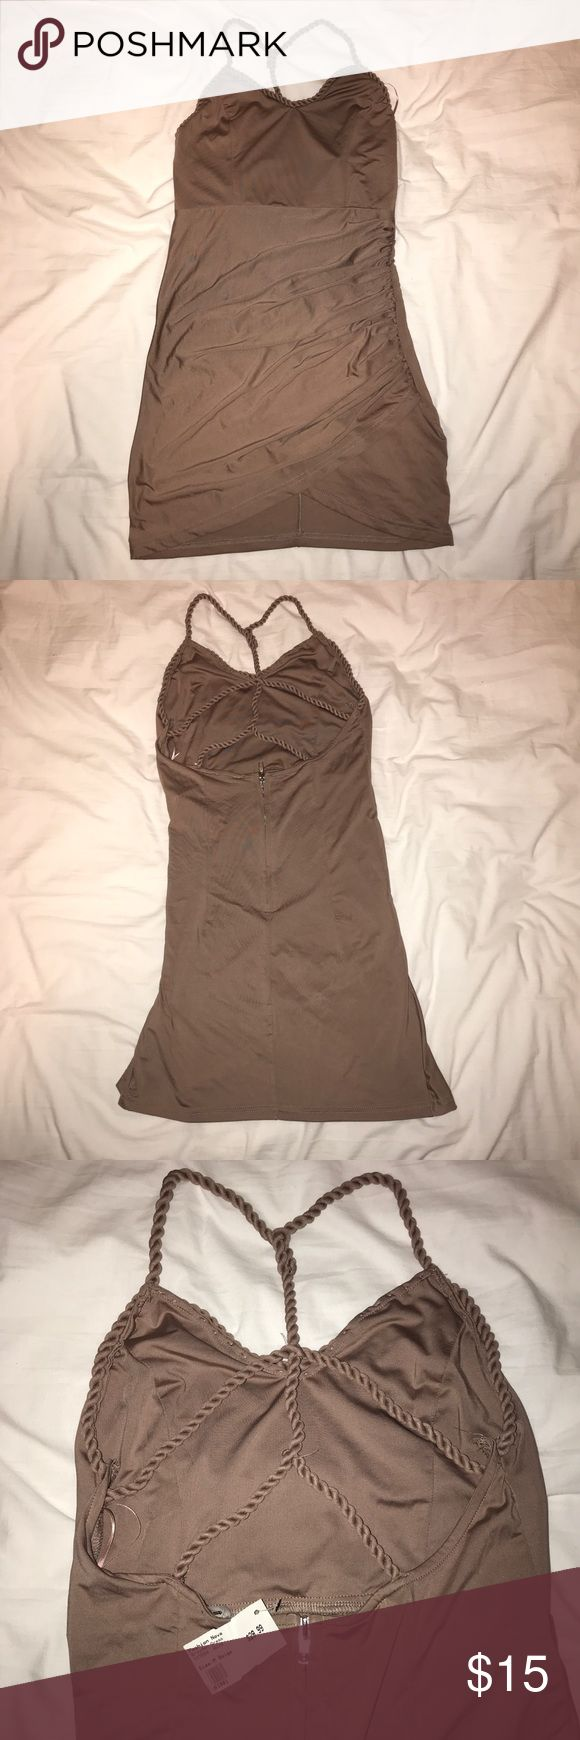 Beige Mini Dress Great for going out. Never worn and still has the tags! Very light material so no need to worry about sweating too much in the clubs! Fashion Nova Dresses Mini